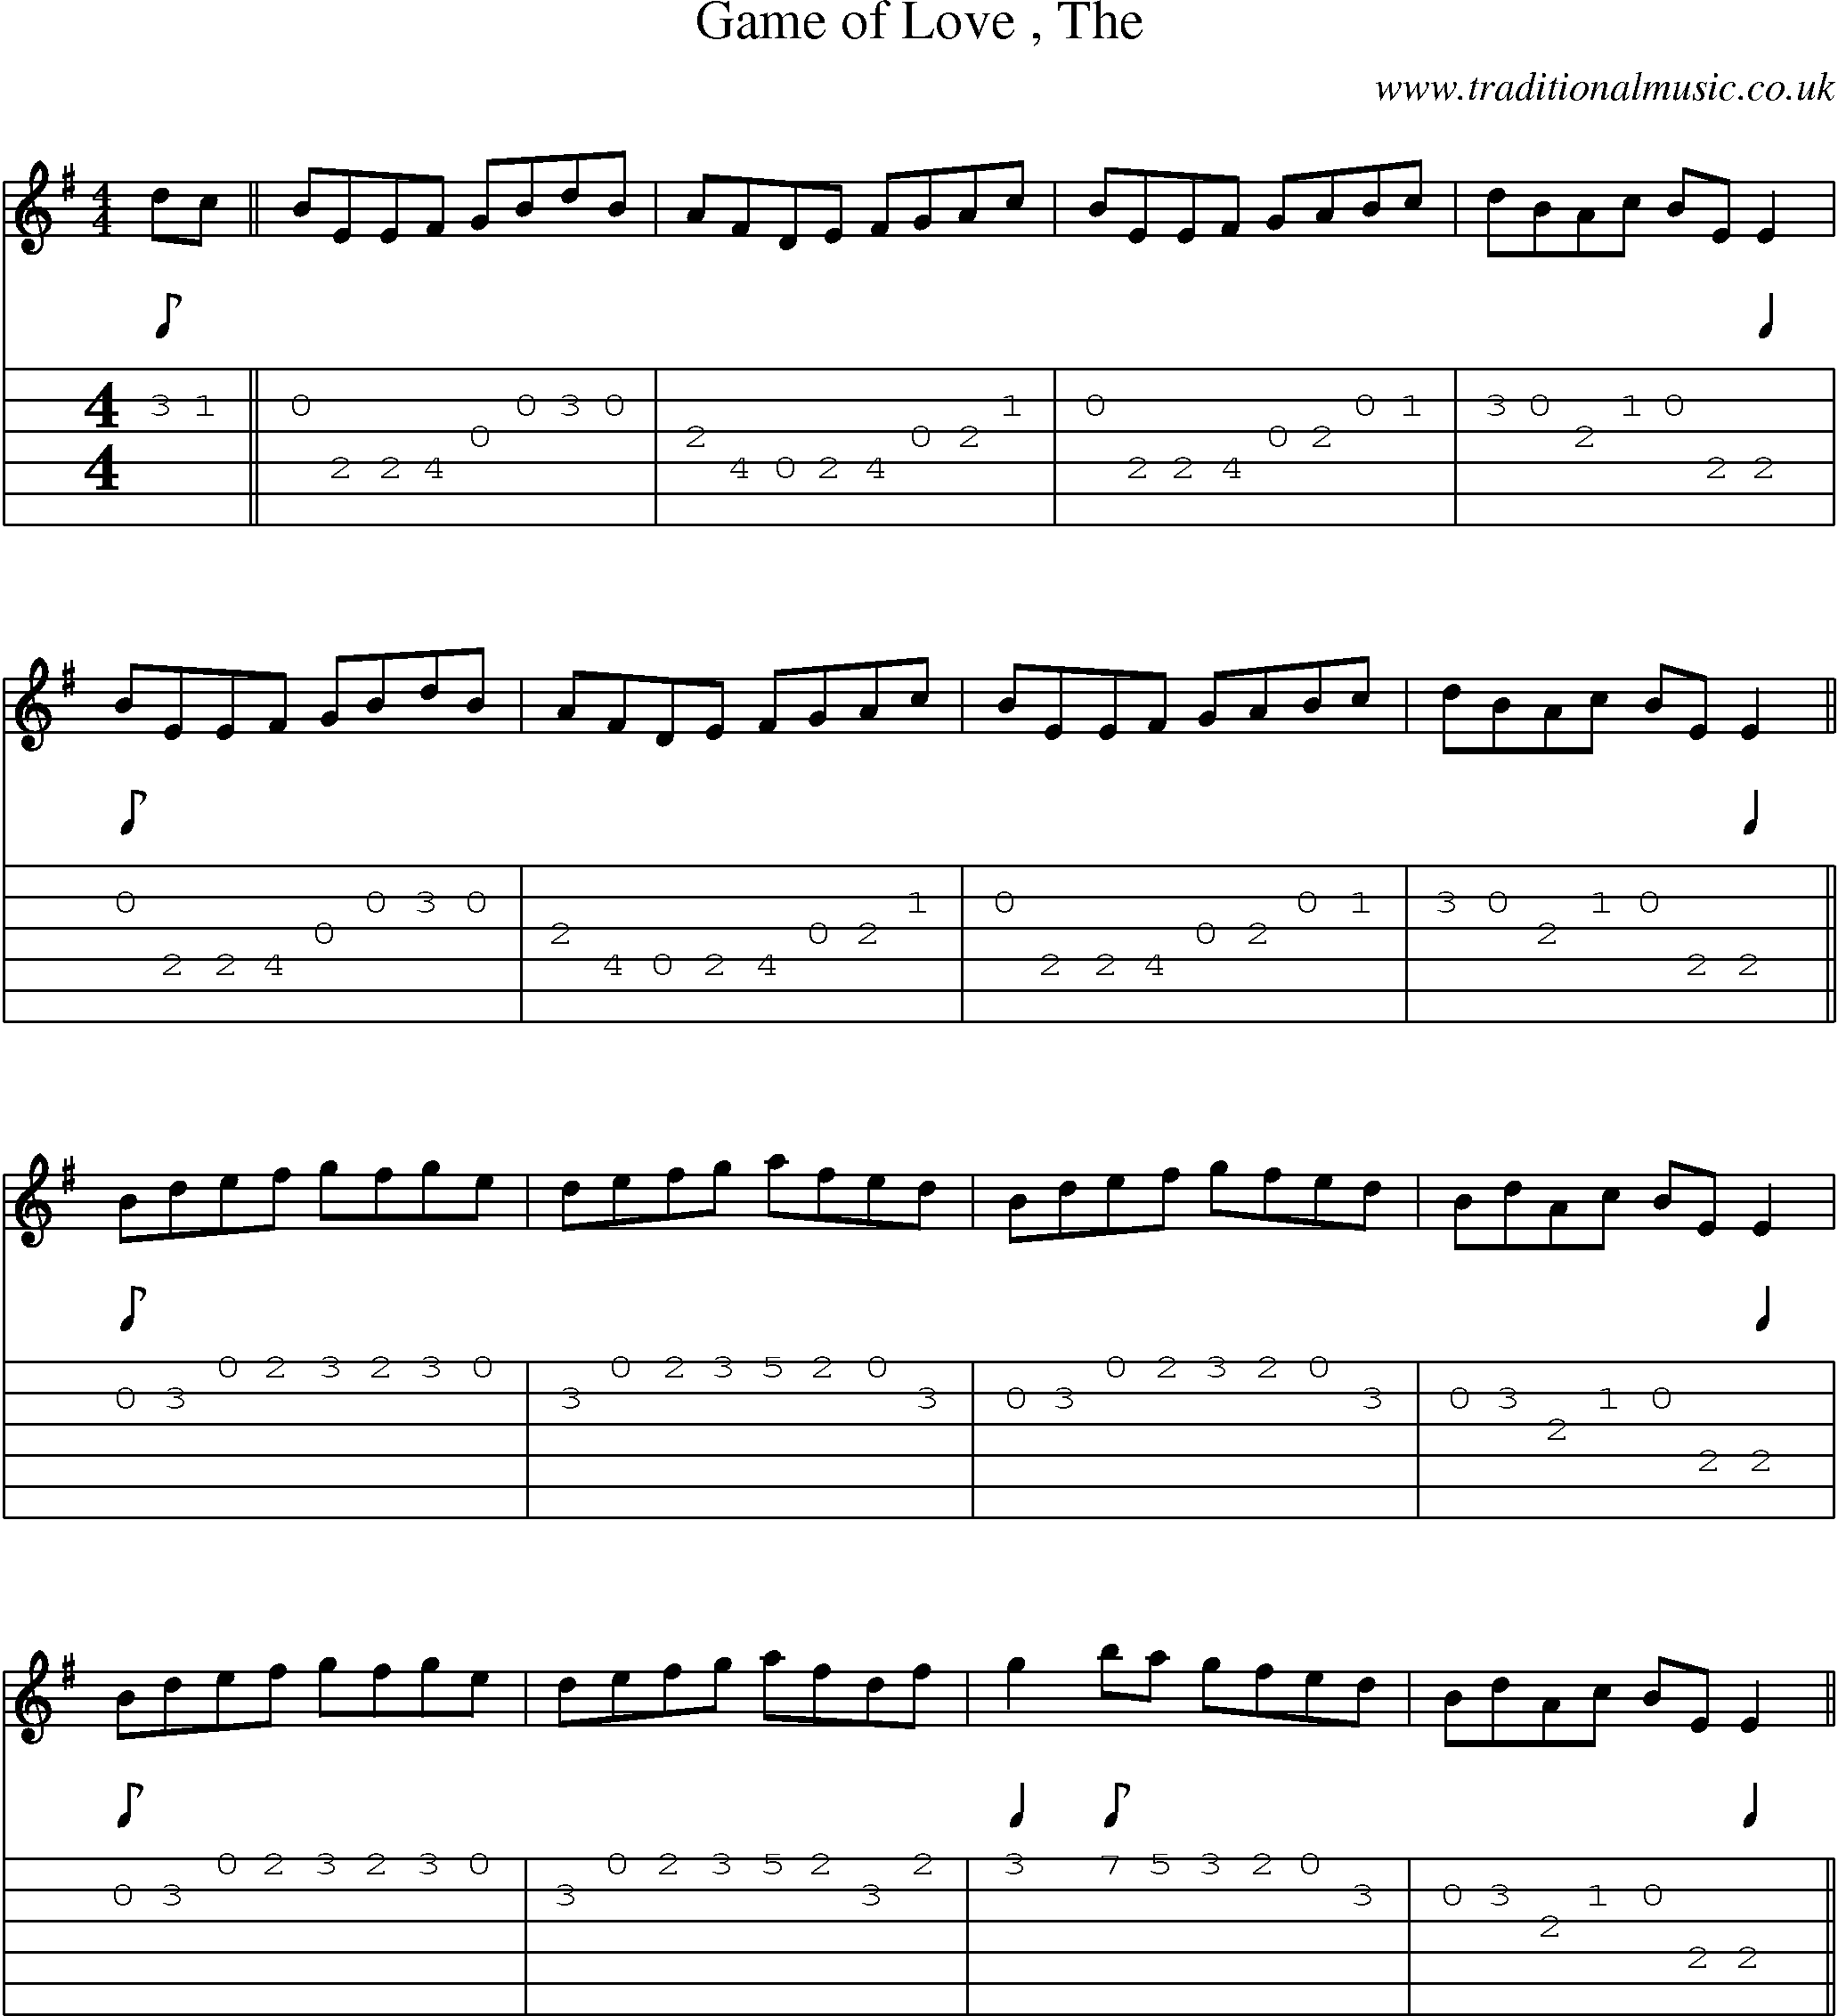 Irish Music Tune: Game Of Love with Guitar Tab, Sheetmusic